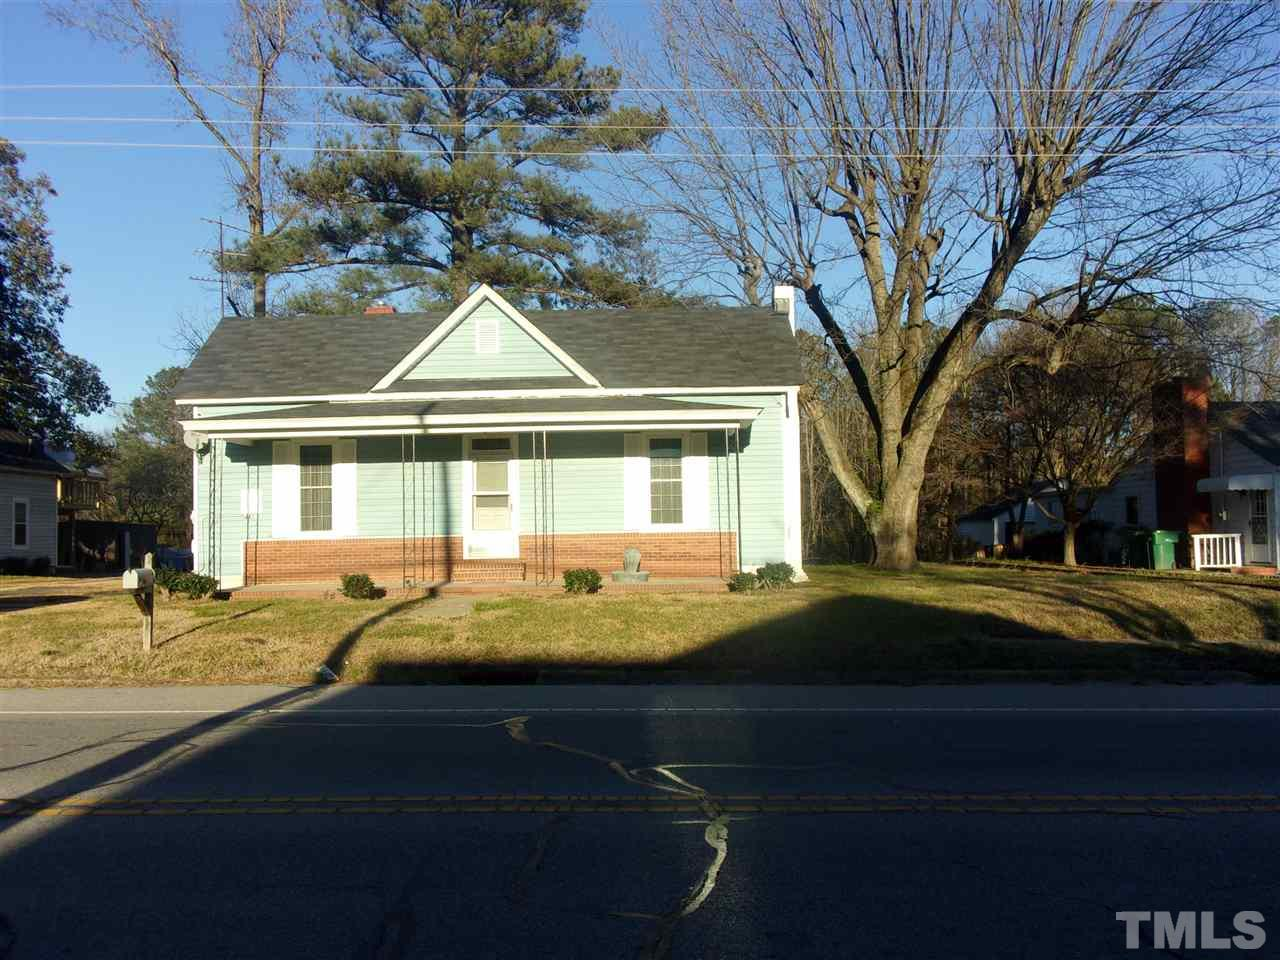 508 W Second St, Kenly, NC